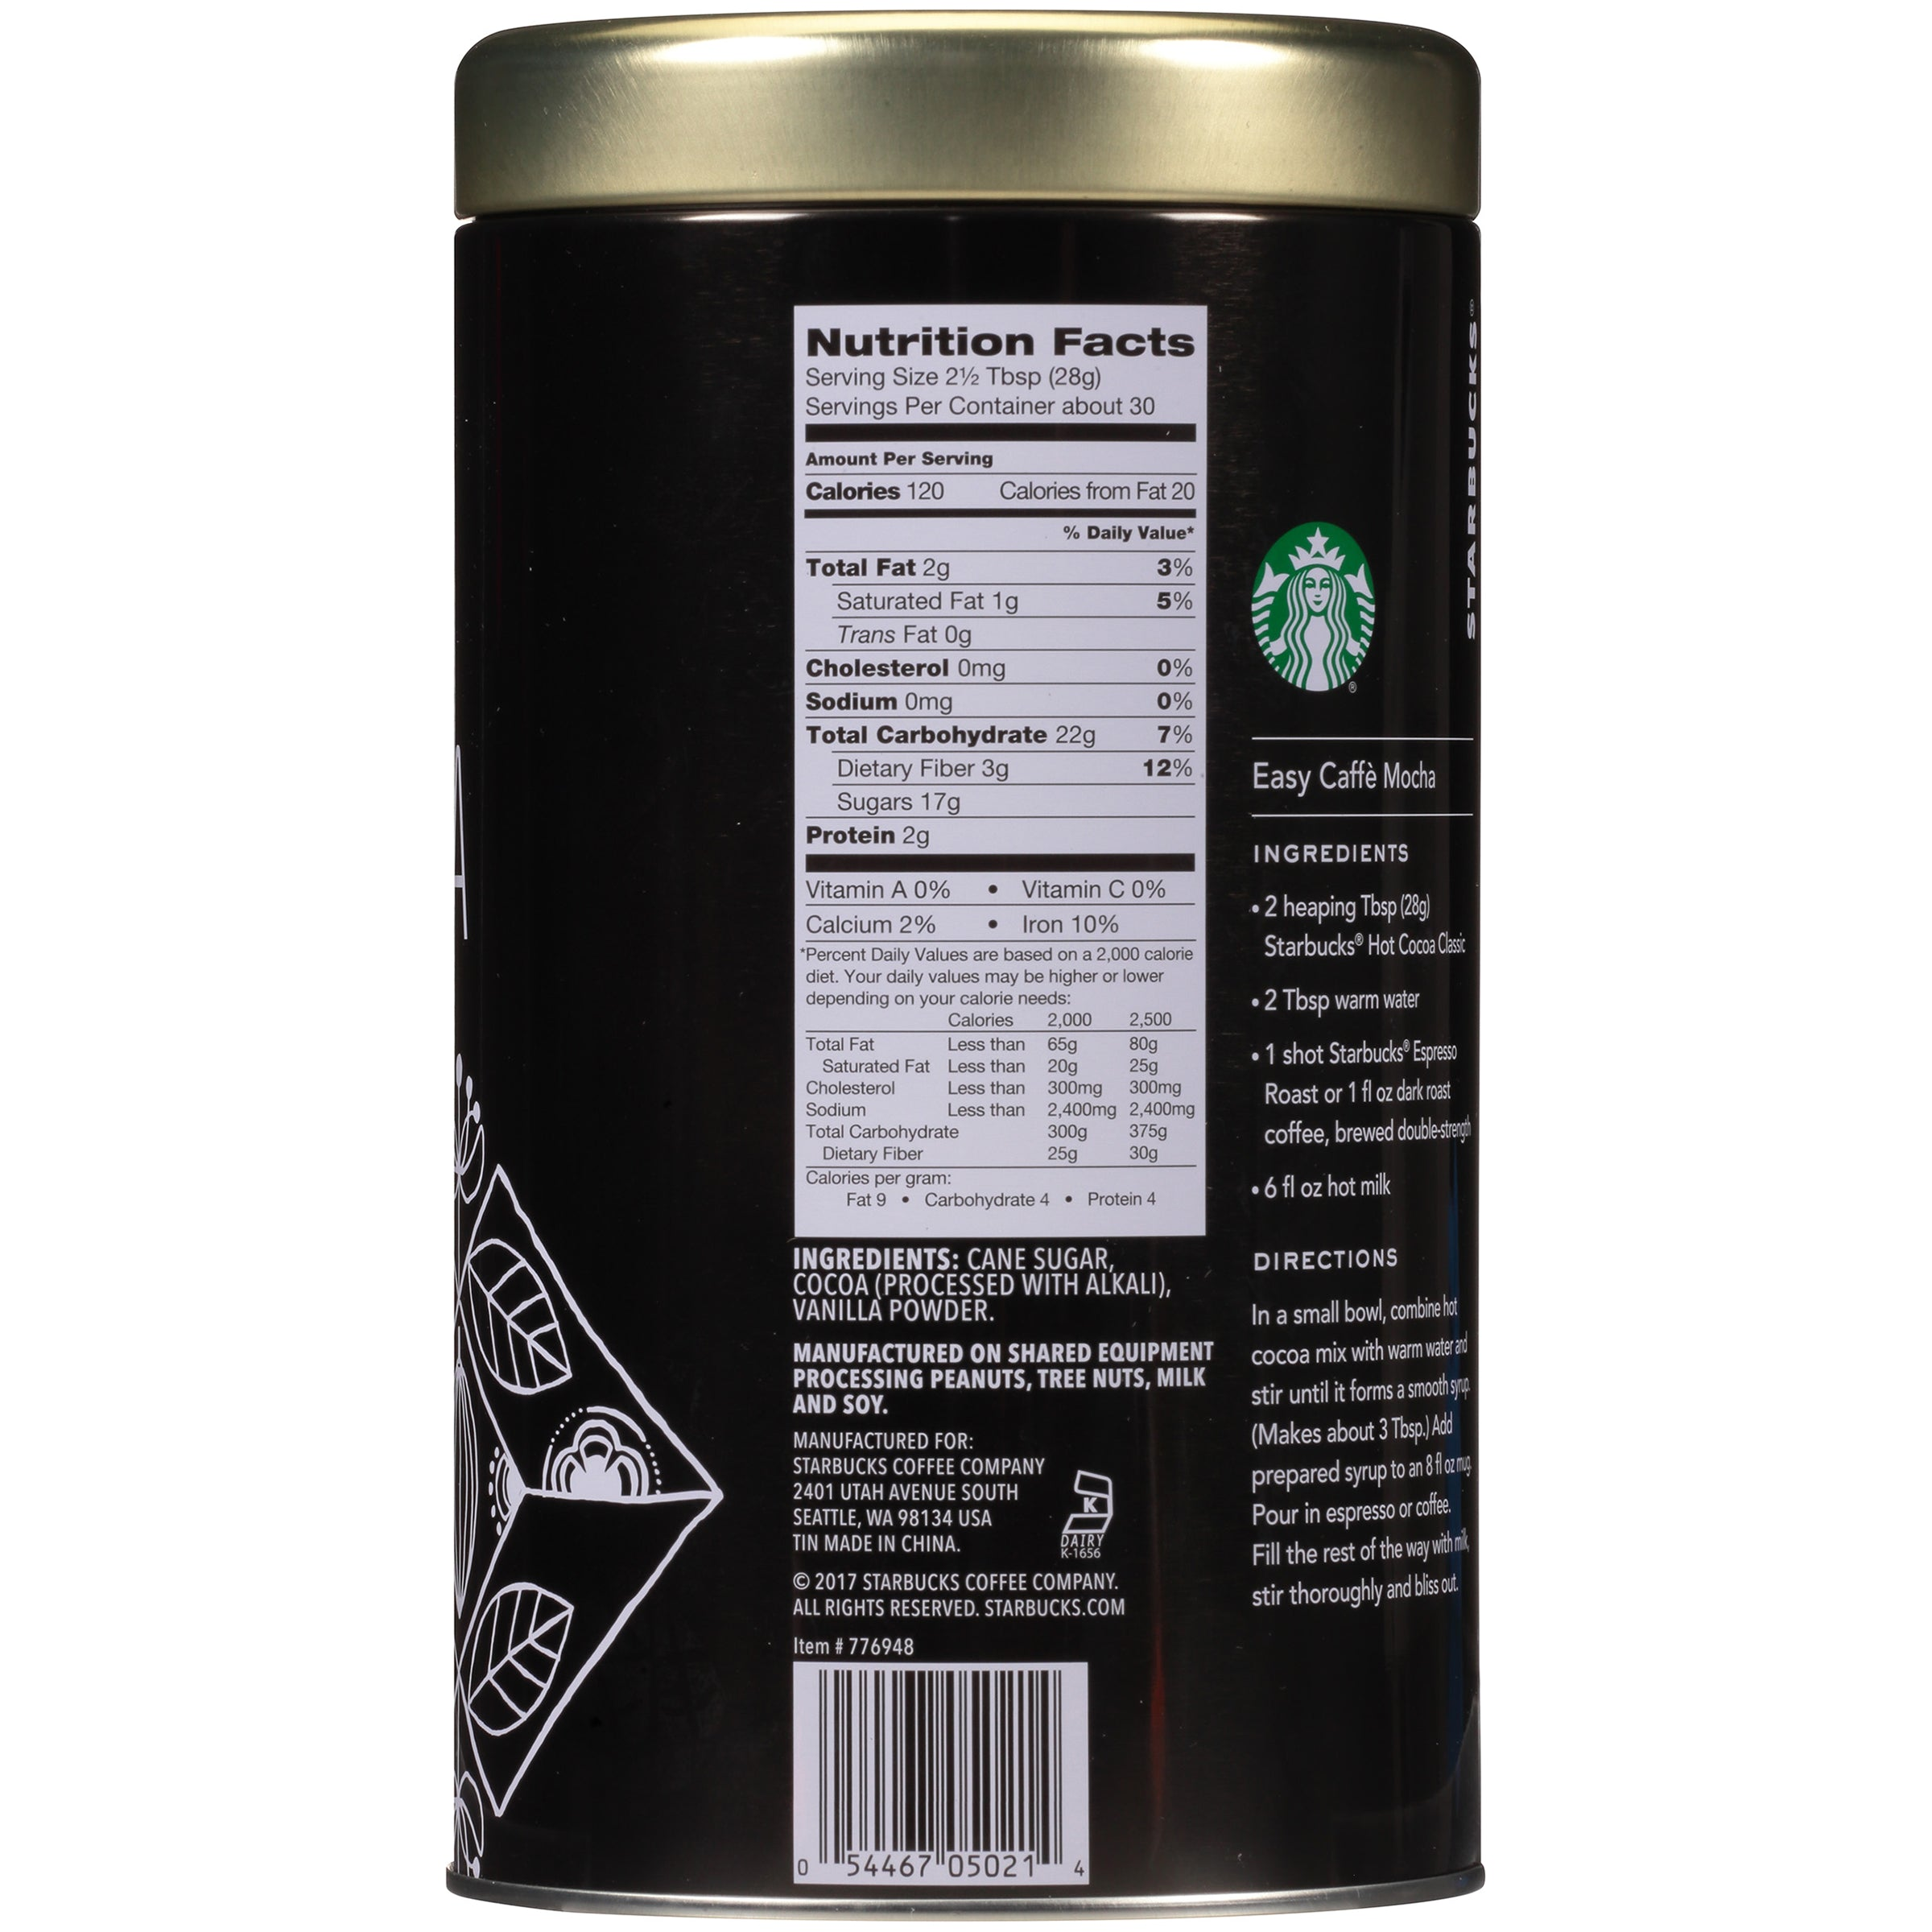 Starbucks Classic Hot Cocoa Mix, 30 Ounce Tin, Pack of 2